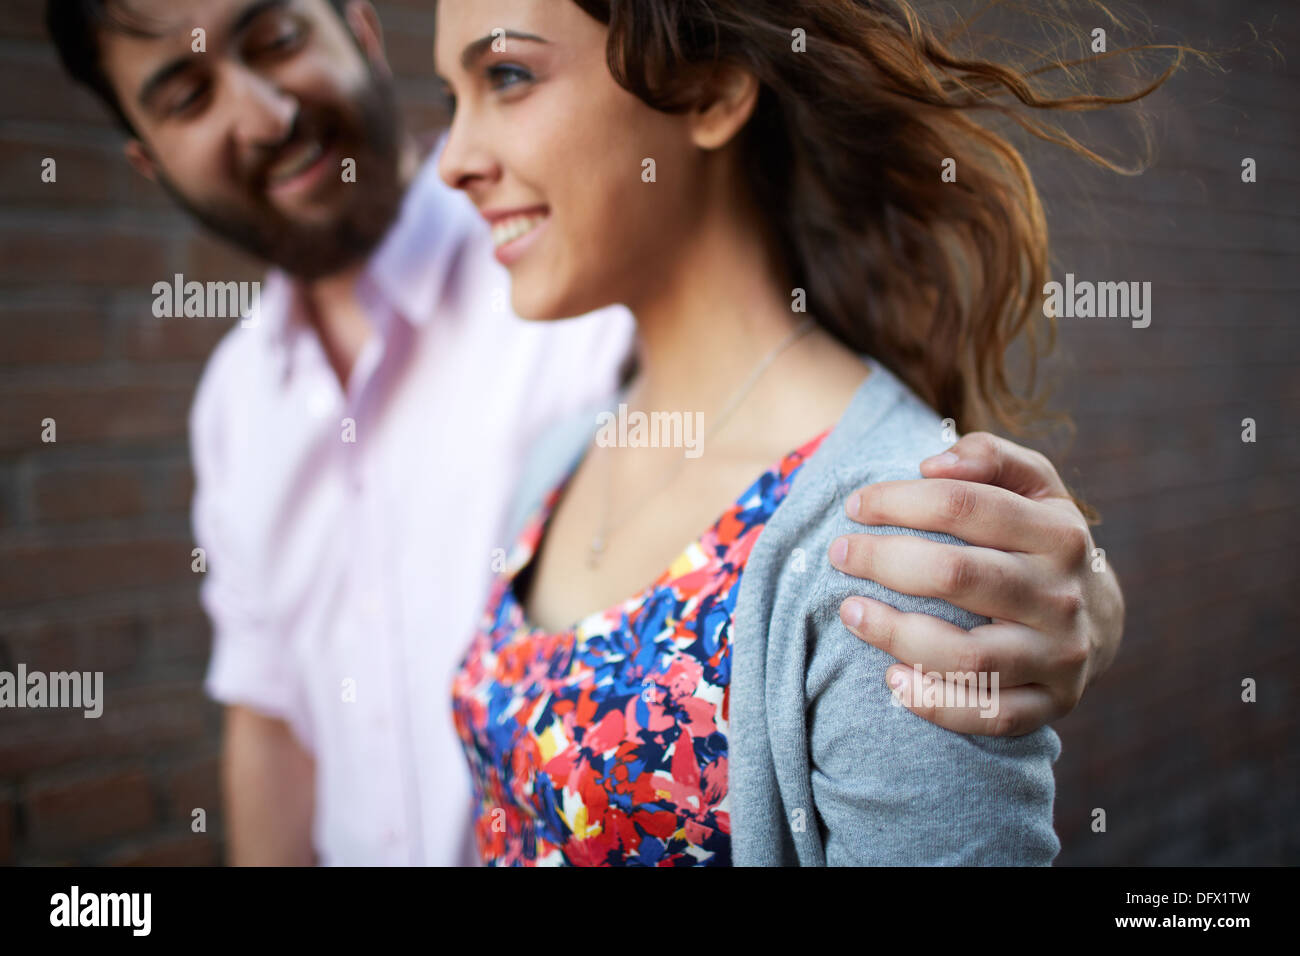 Handsome man embracing young girl while walking outdoors Stock Photo